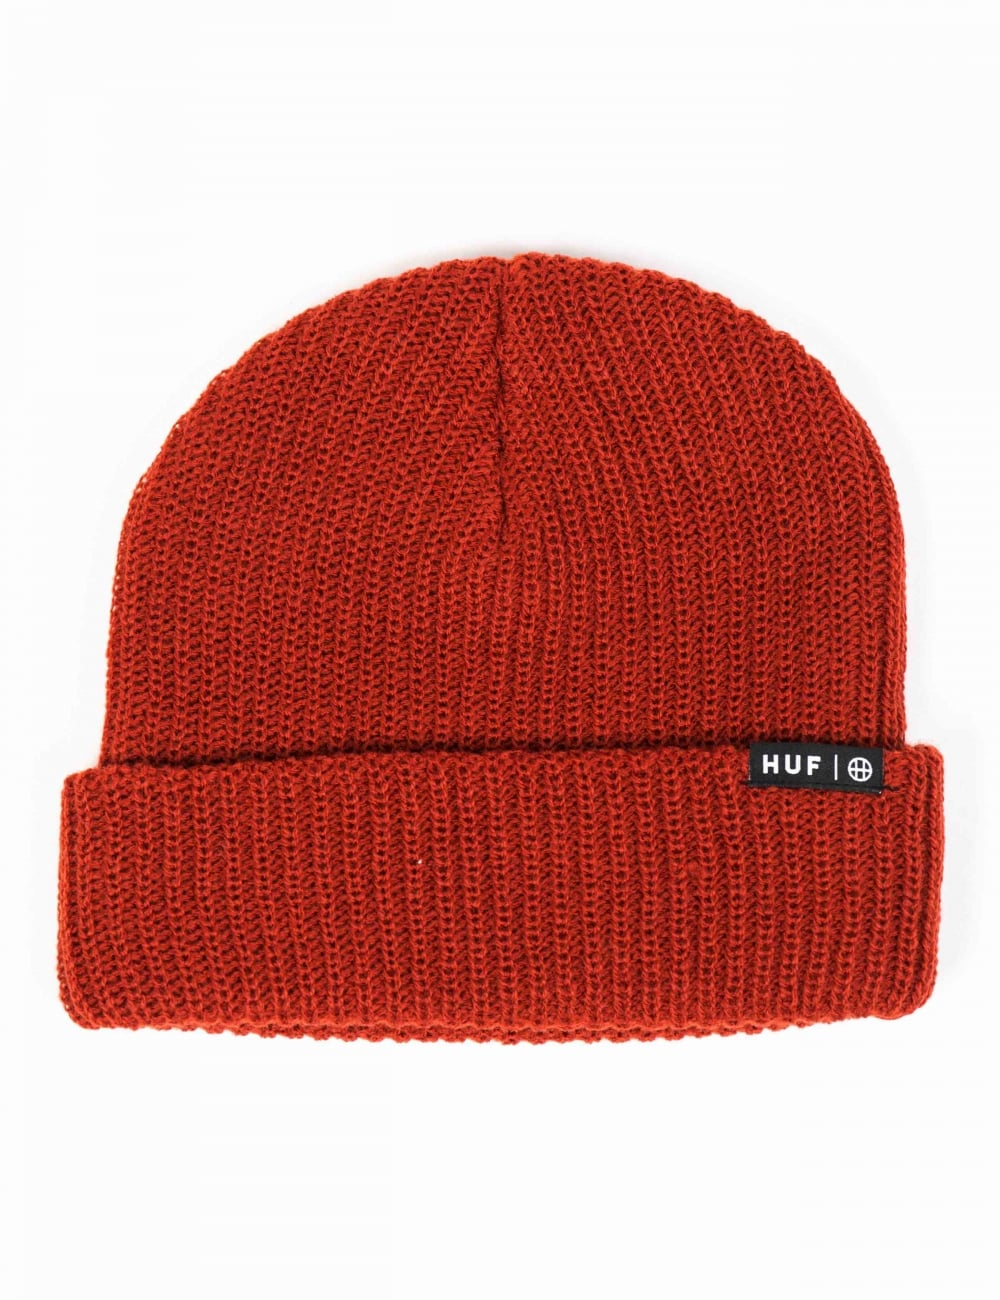 Huf Usual Beanie - Rust - Accessories from Fat Buddha Store UK 236064bcc01